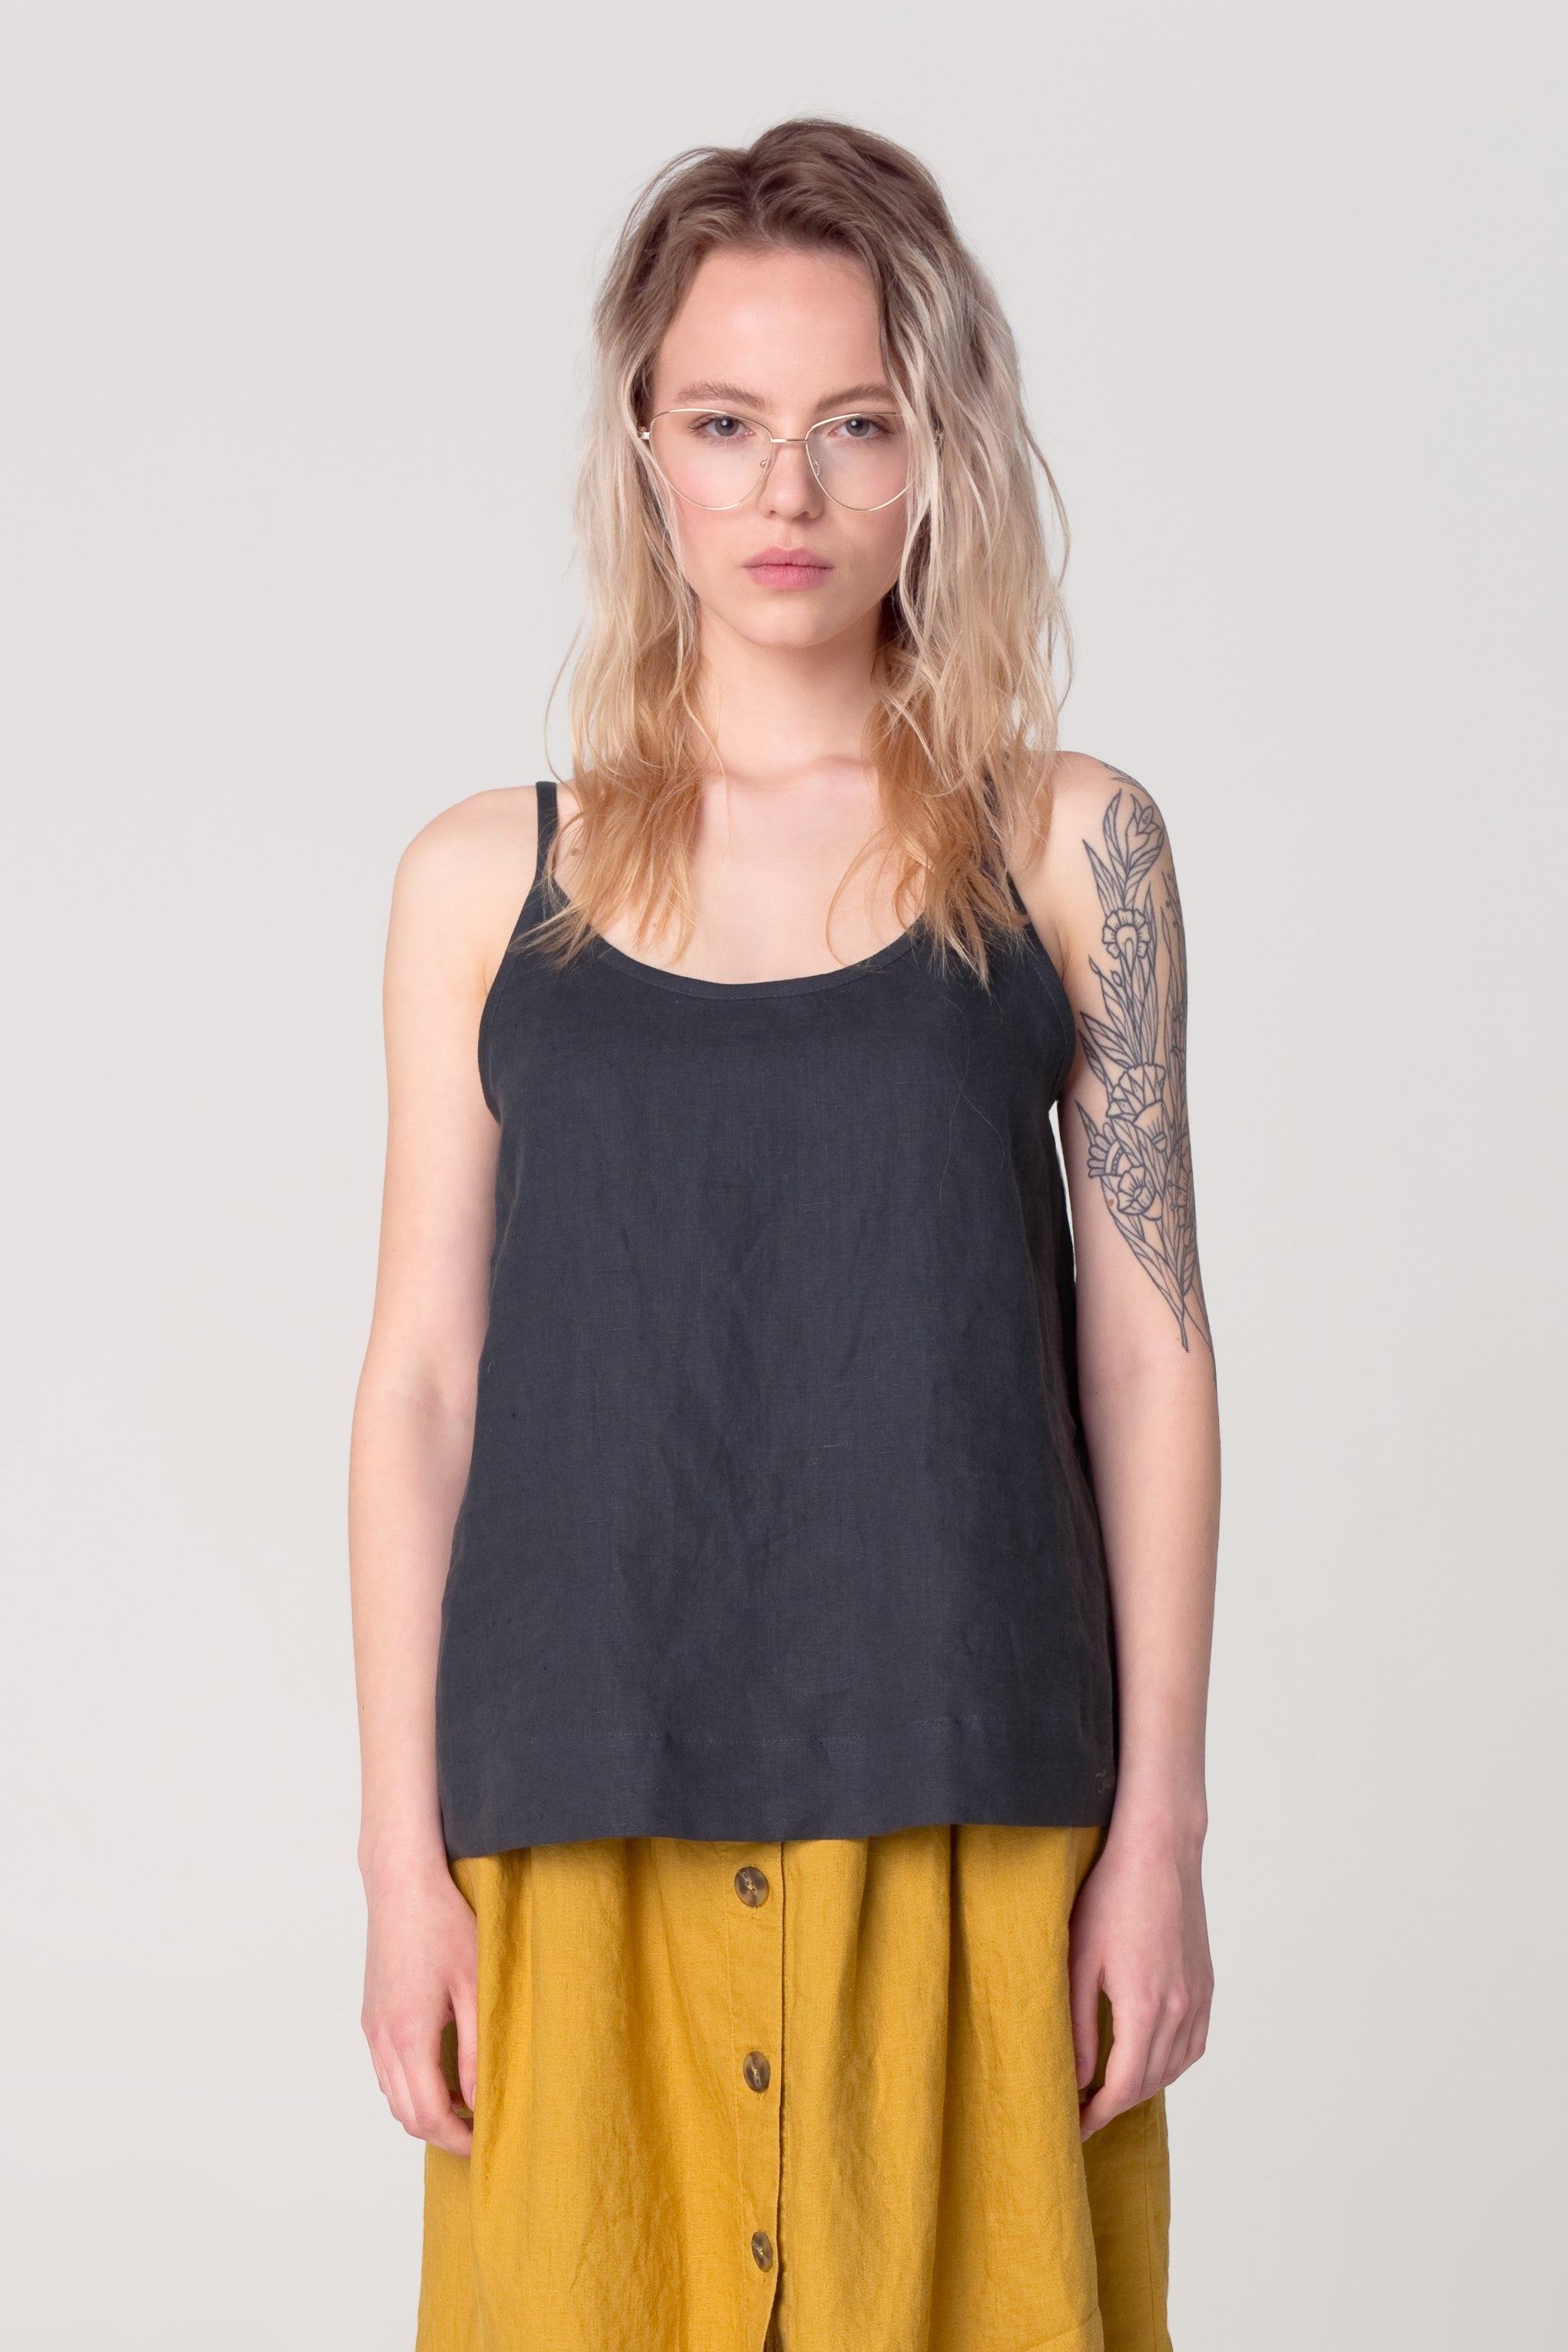 The Soulmate Store Black Linen Organic Top Fashion Linen Top Organic